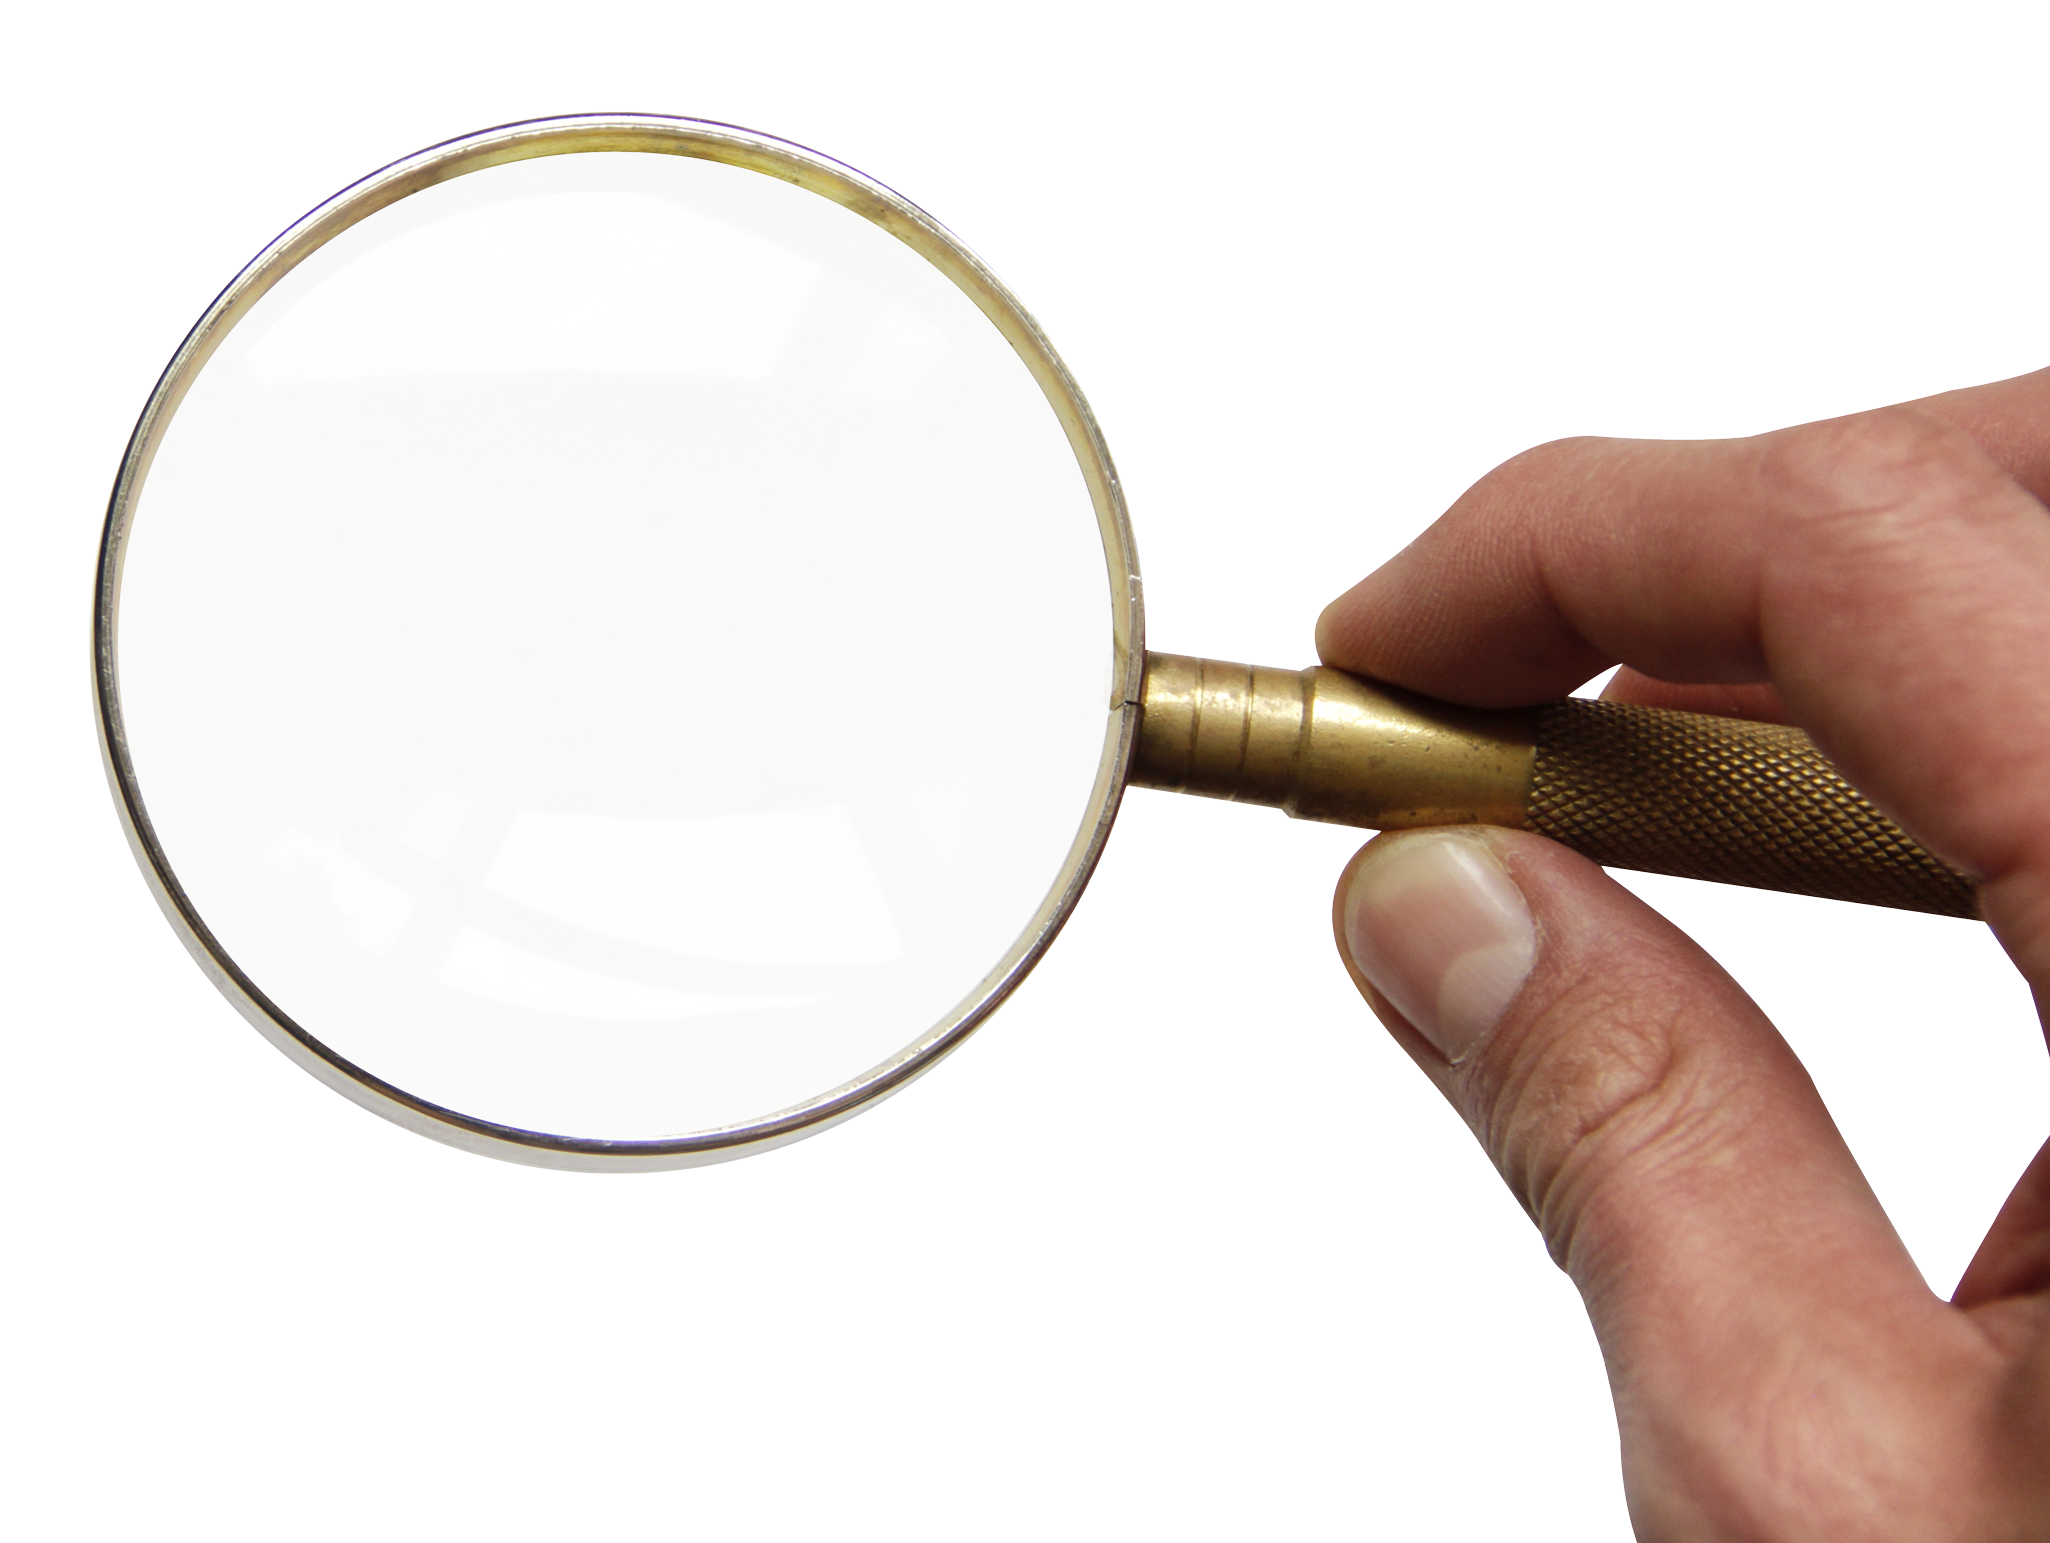 magnifying glass png image purepng free transparent cc0 png